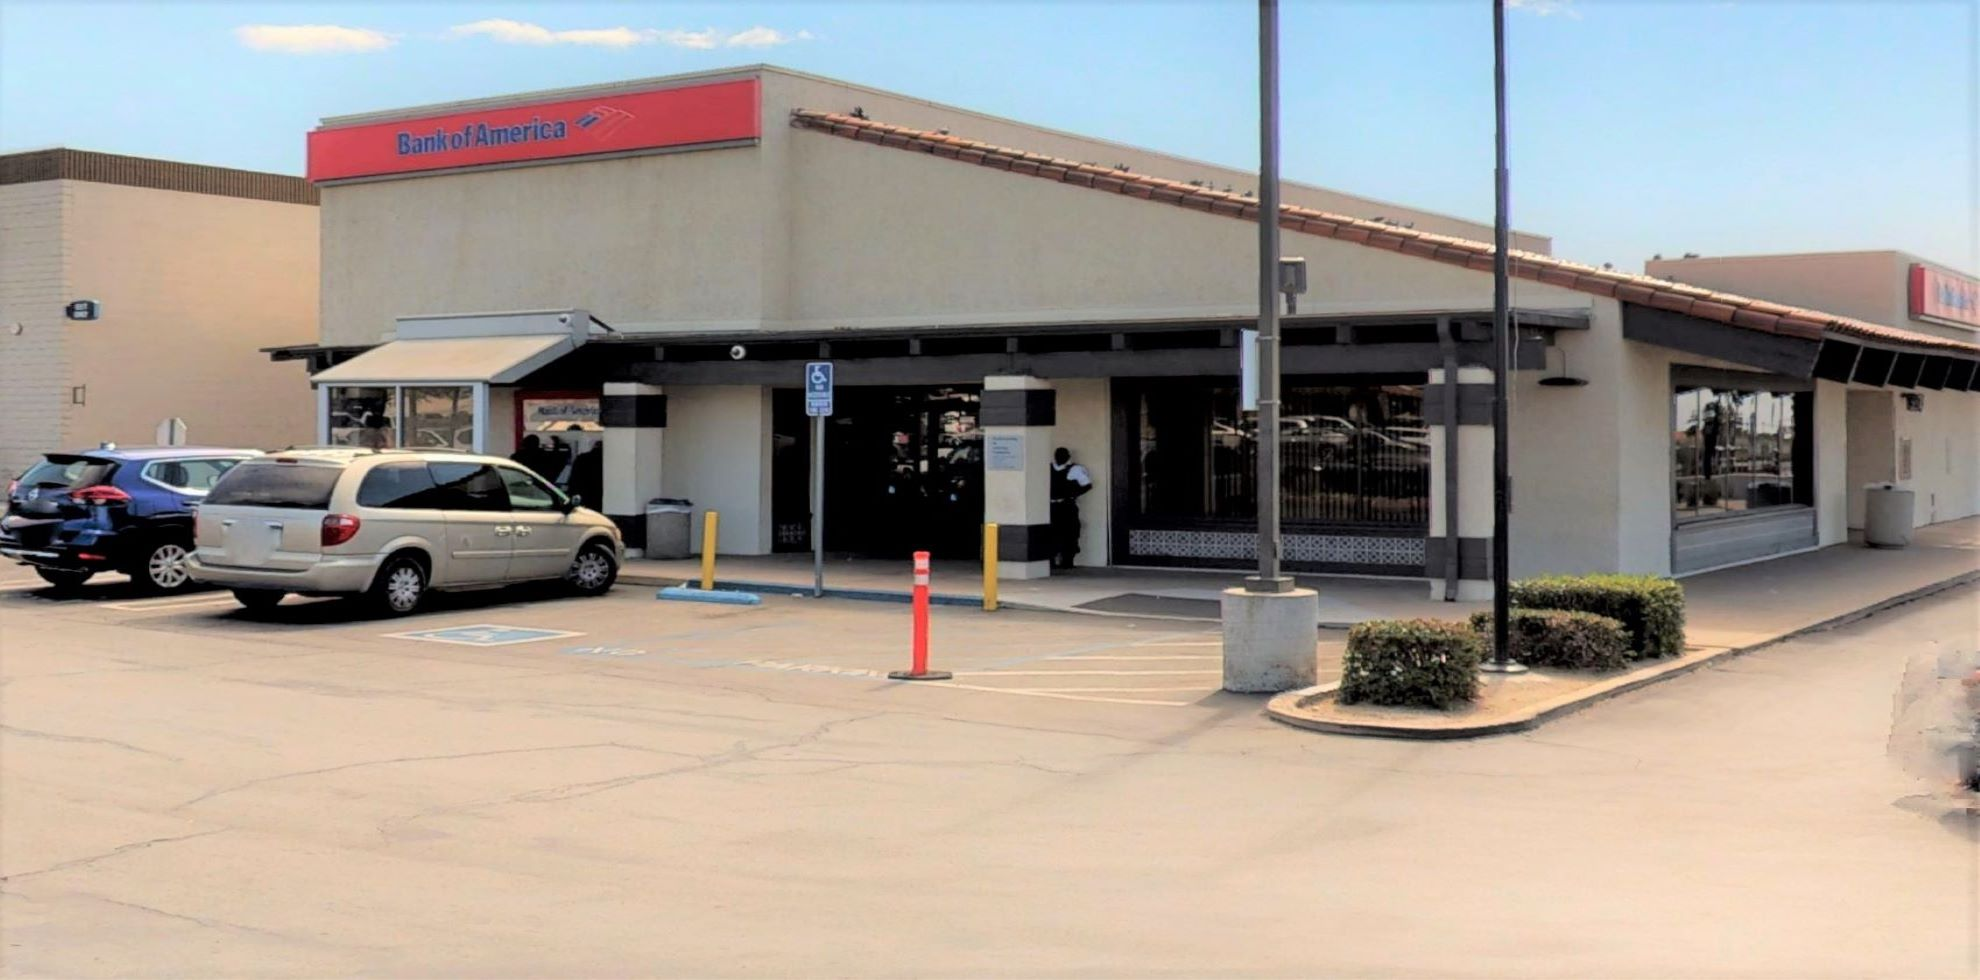 Bank of America financial center with drive-thru ATM   13210 Palm Dr, Desert Hot Springs, CA 92240